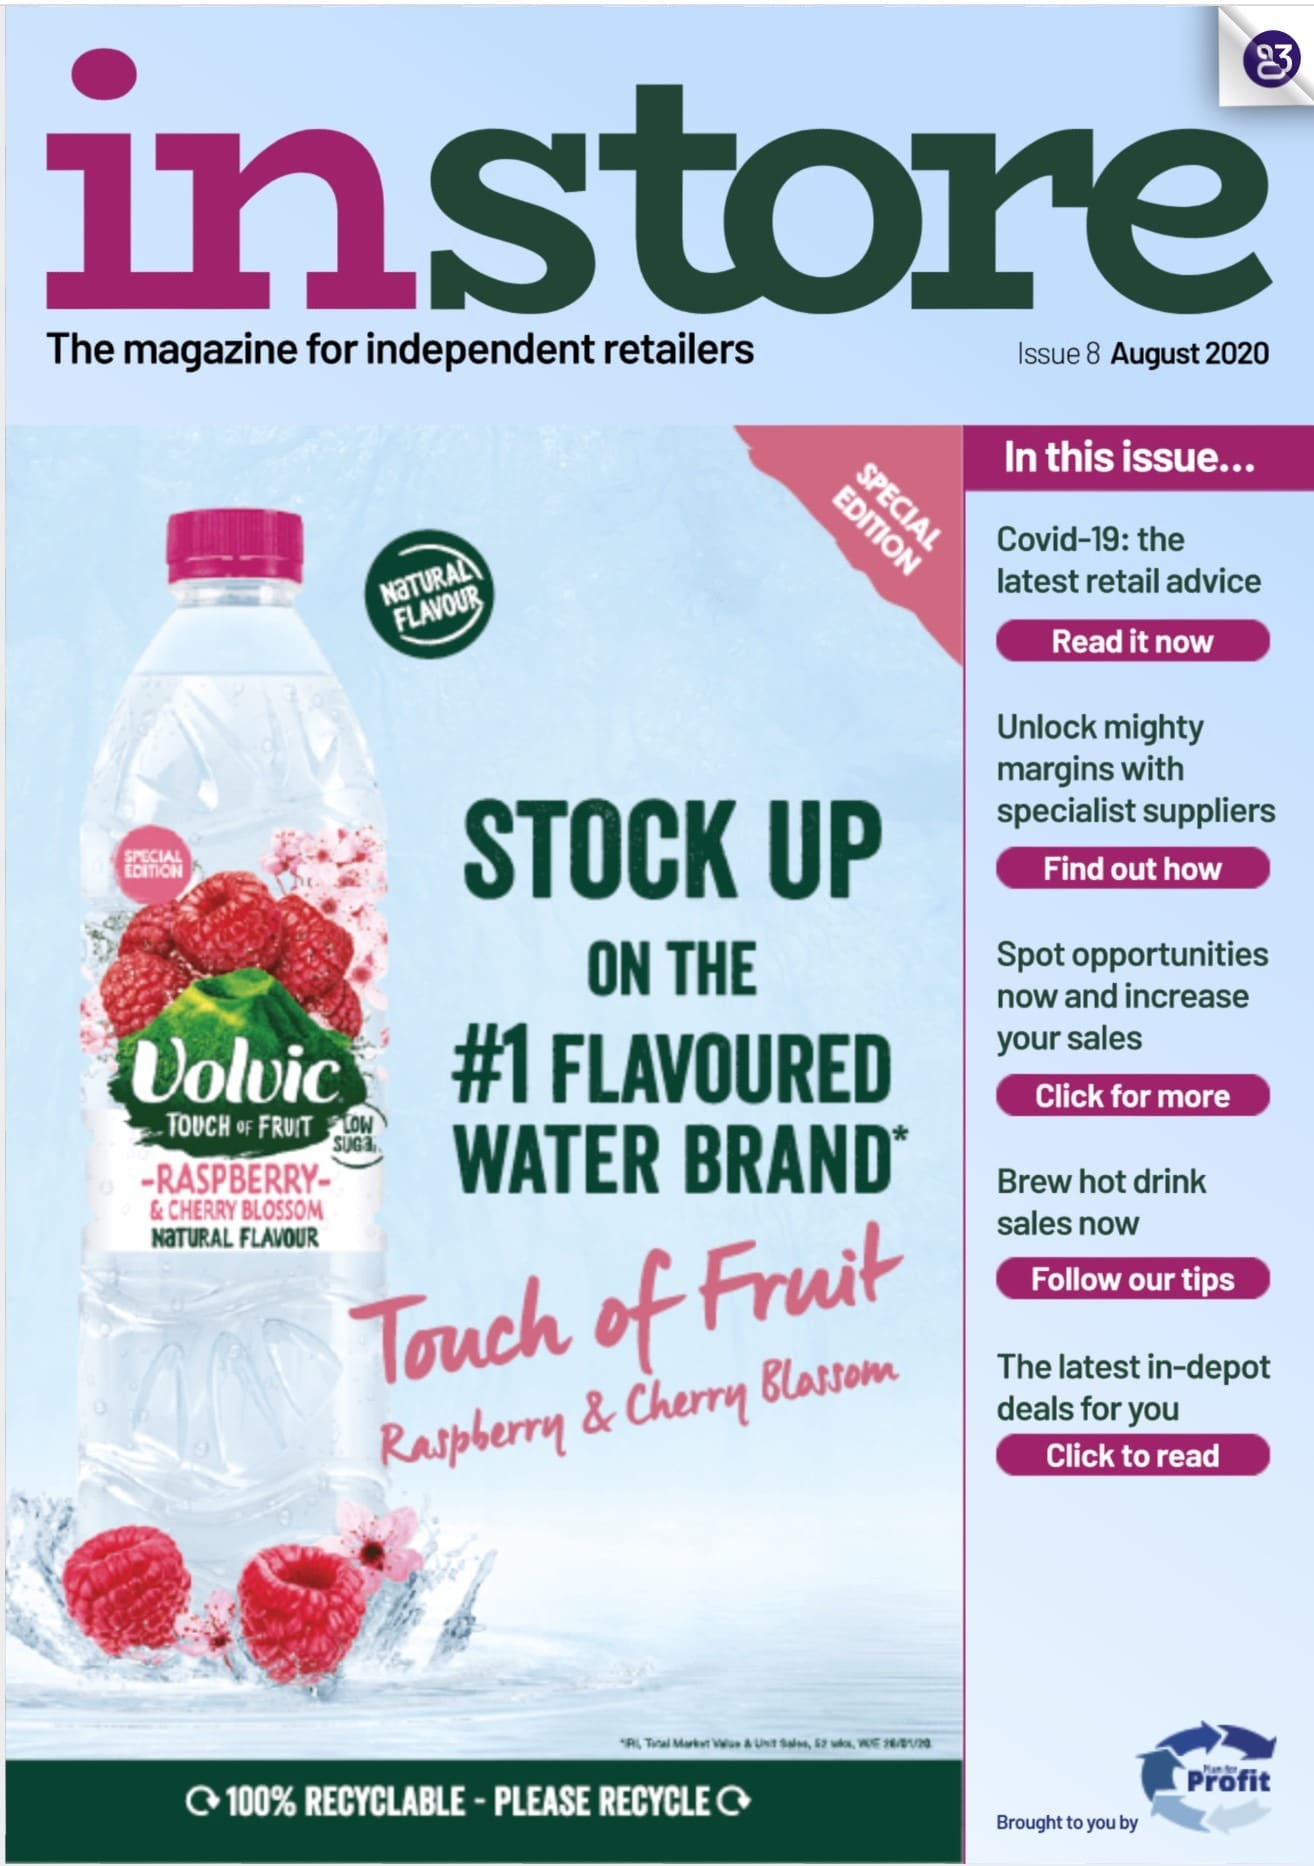 volvic touch of fruit raspberry & cherry blossom natural flavored water